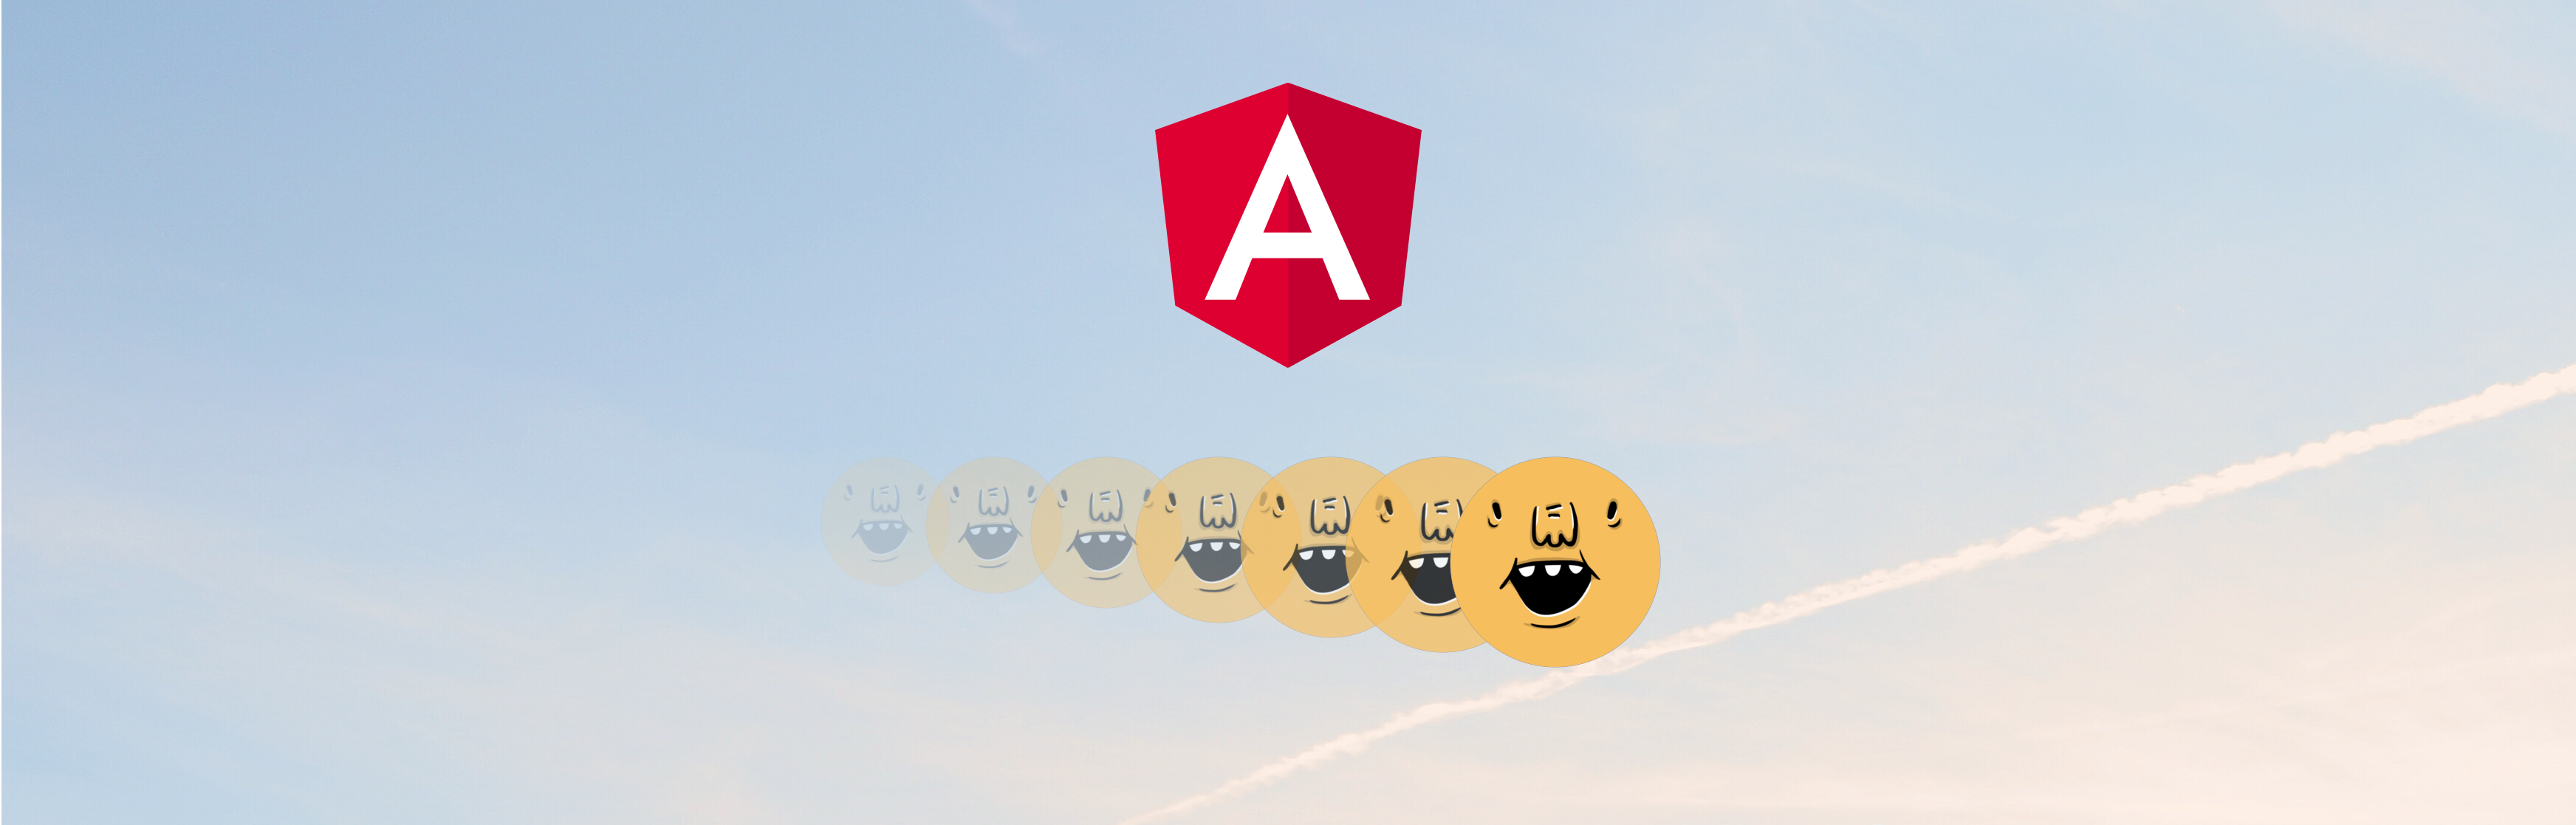 Angular In Motion 4 Approaches To Animation By Tomek Sulkowski Frontend Coach Medium